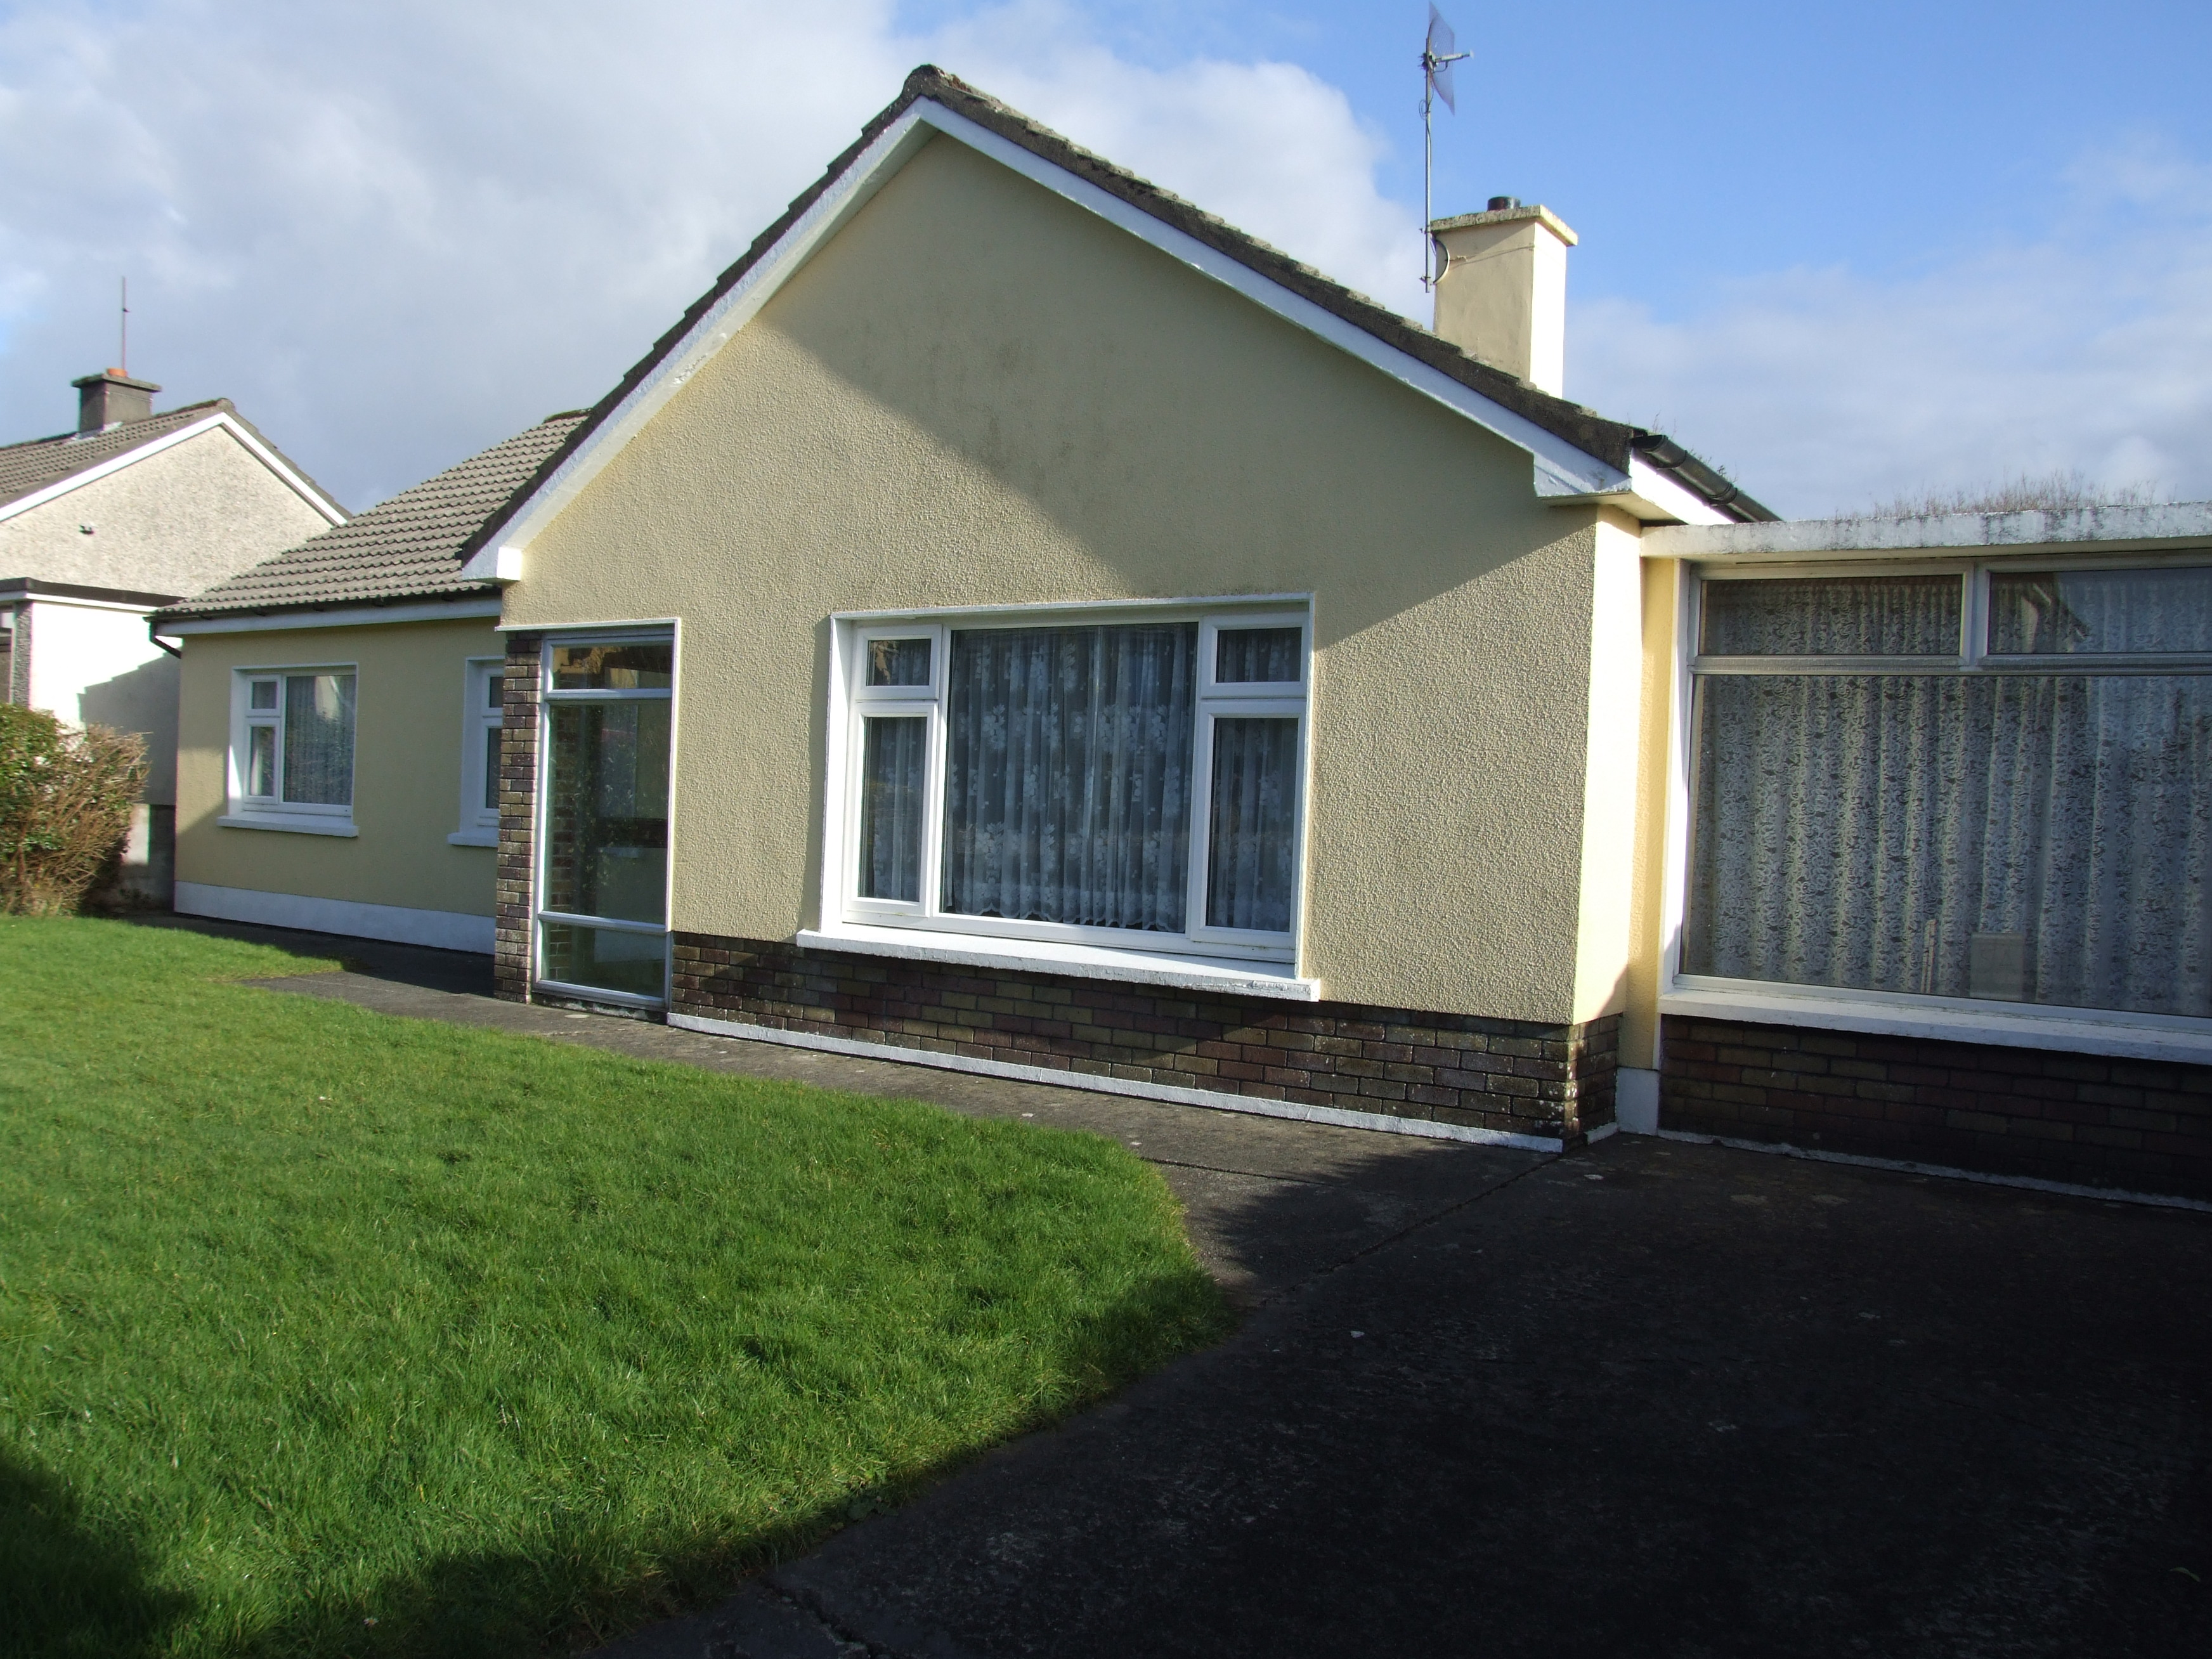 5A Racecourse Lawn, Oakpark, Tralee, Co. Kerry.